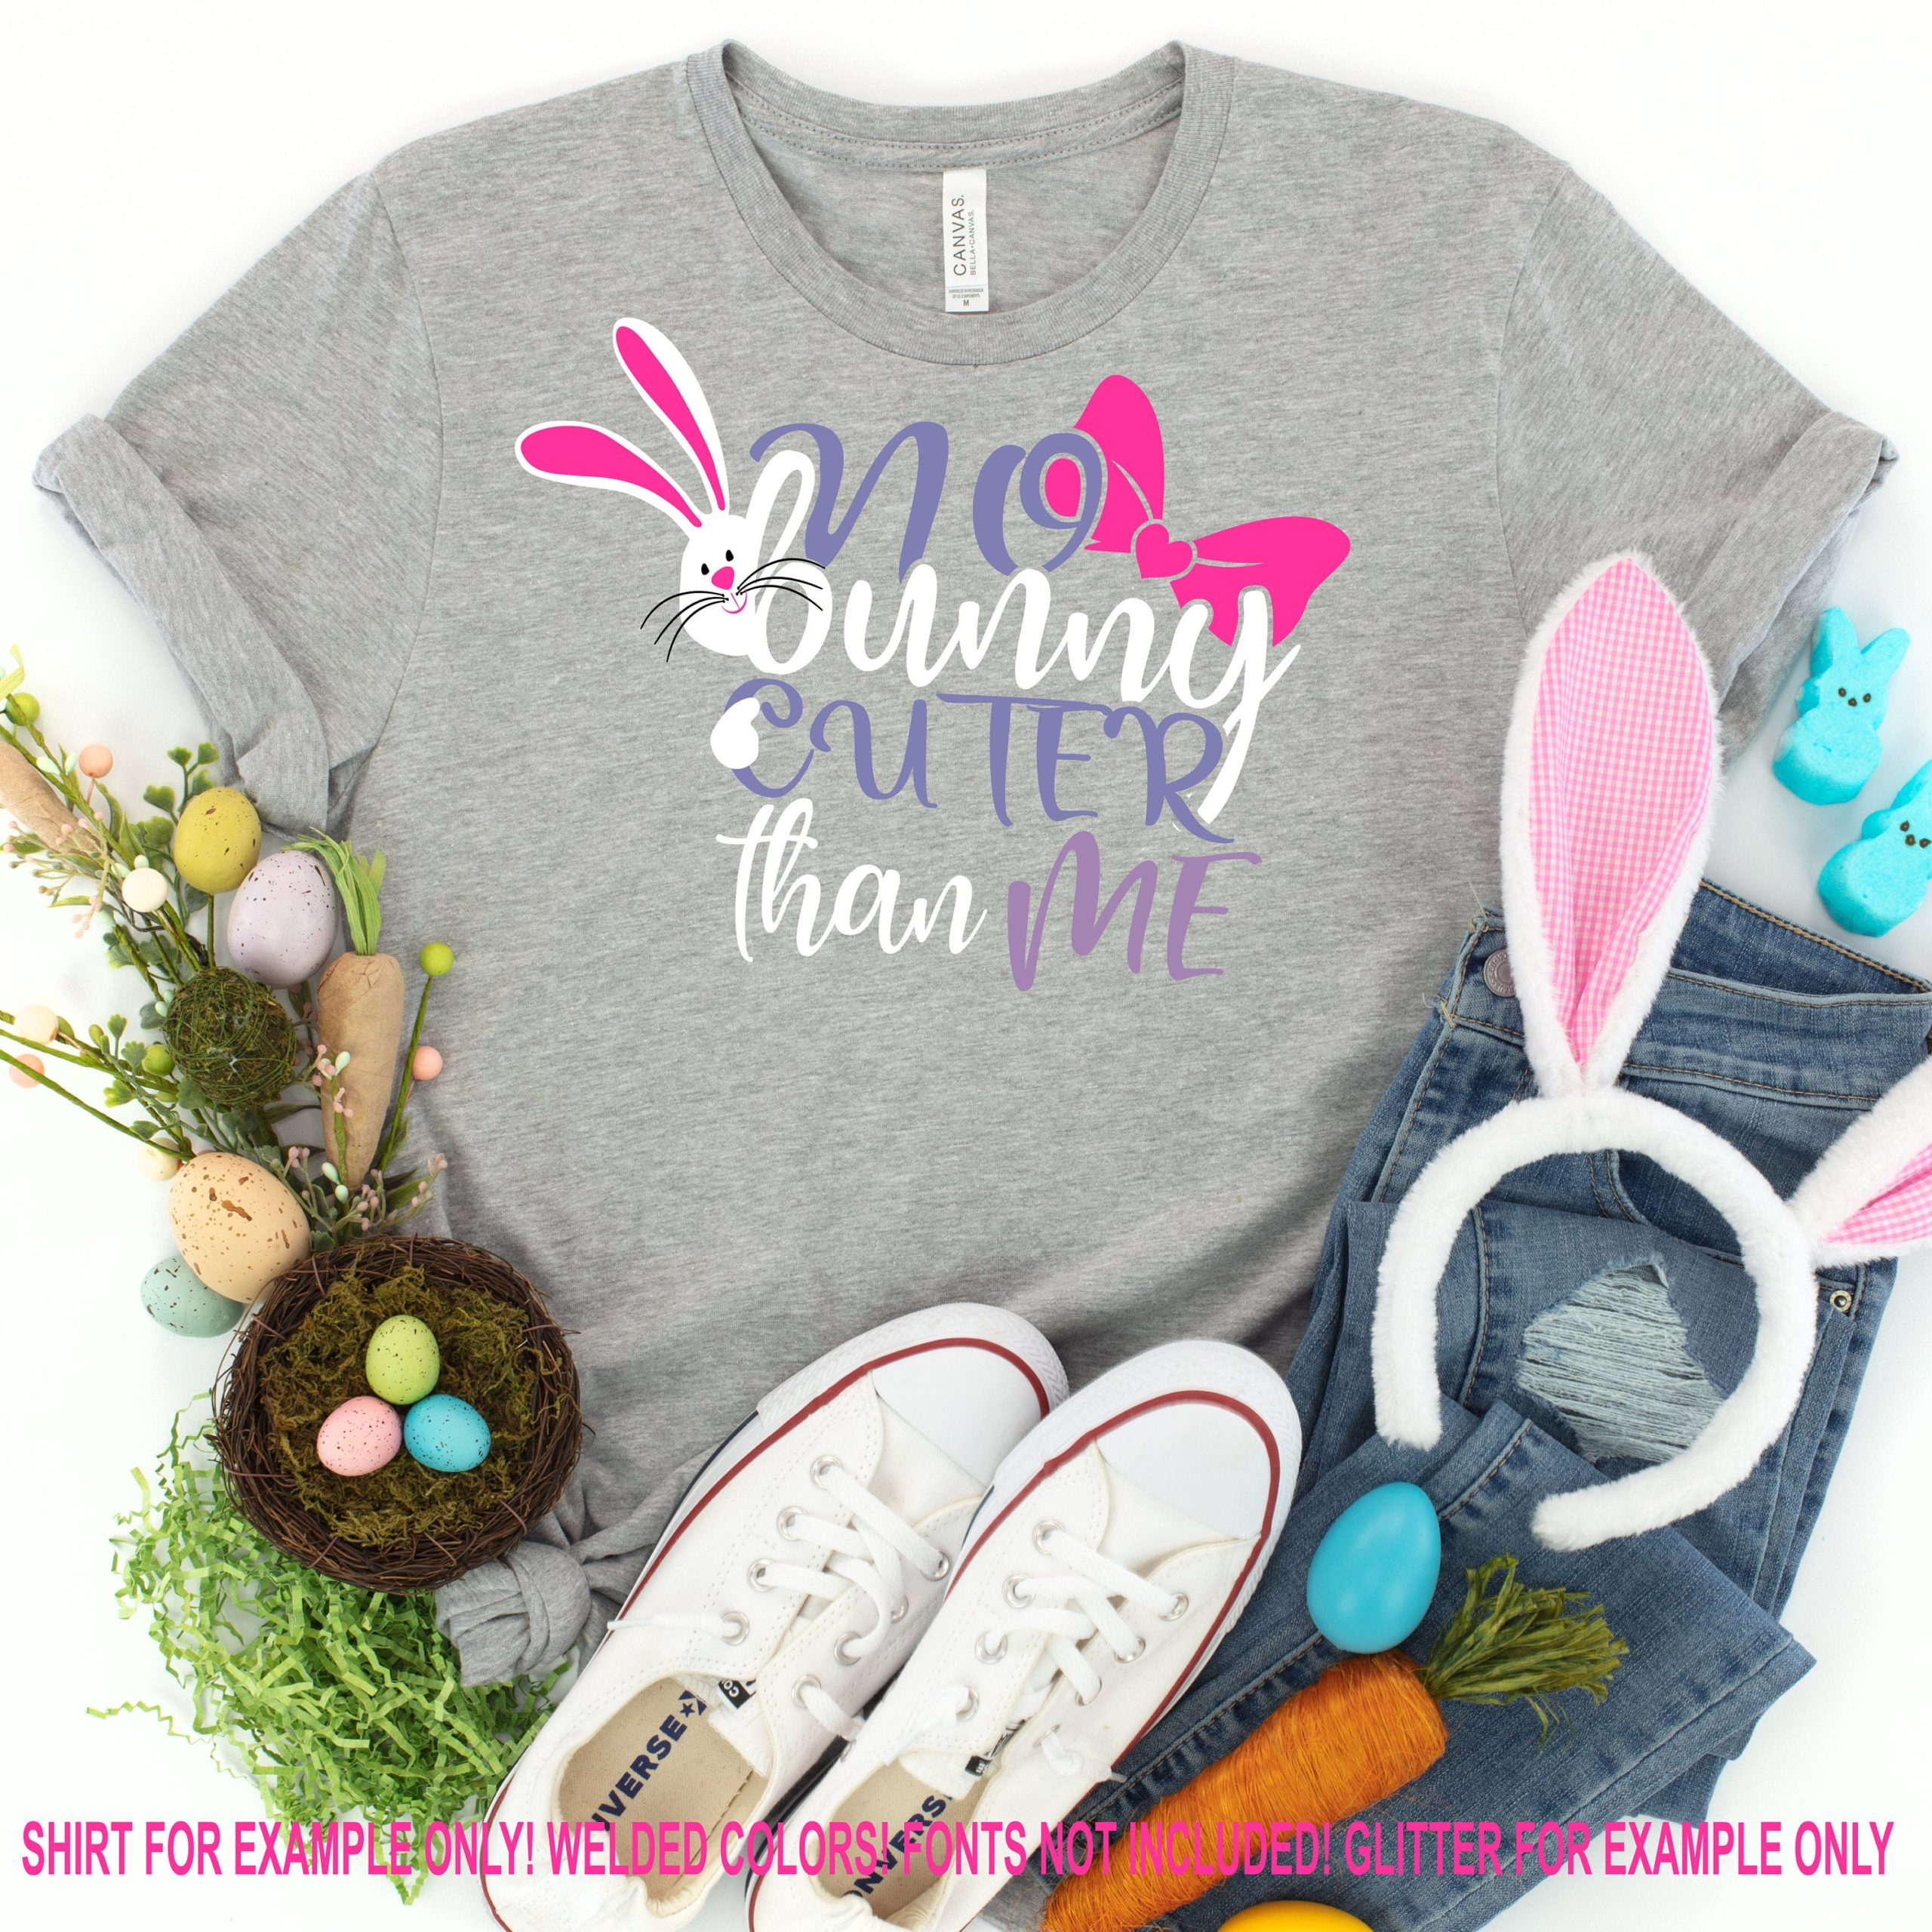 Easter-svg-no-bunny-cuter-than-me-svg-bunny-svg-easter-bunny-svg-jesus-svg-easter-svg-design-easter-cut-file-easter-cricut-svg-60513b5f